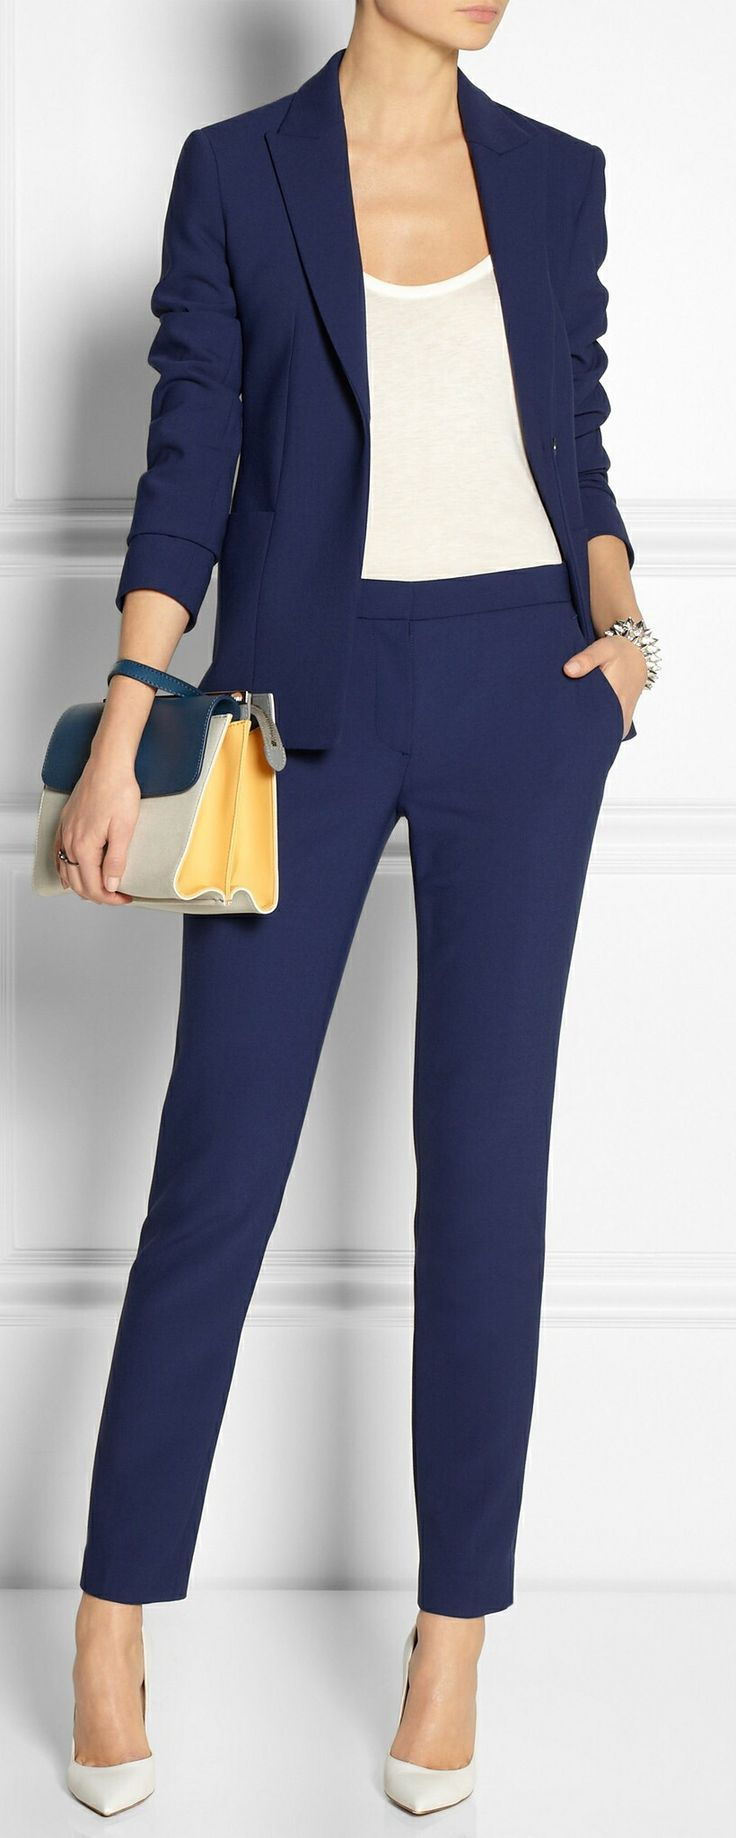 Got the trousers and blazer, and the handbag Need white tank and shoes